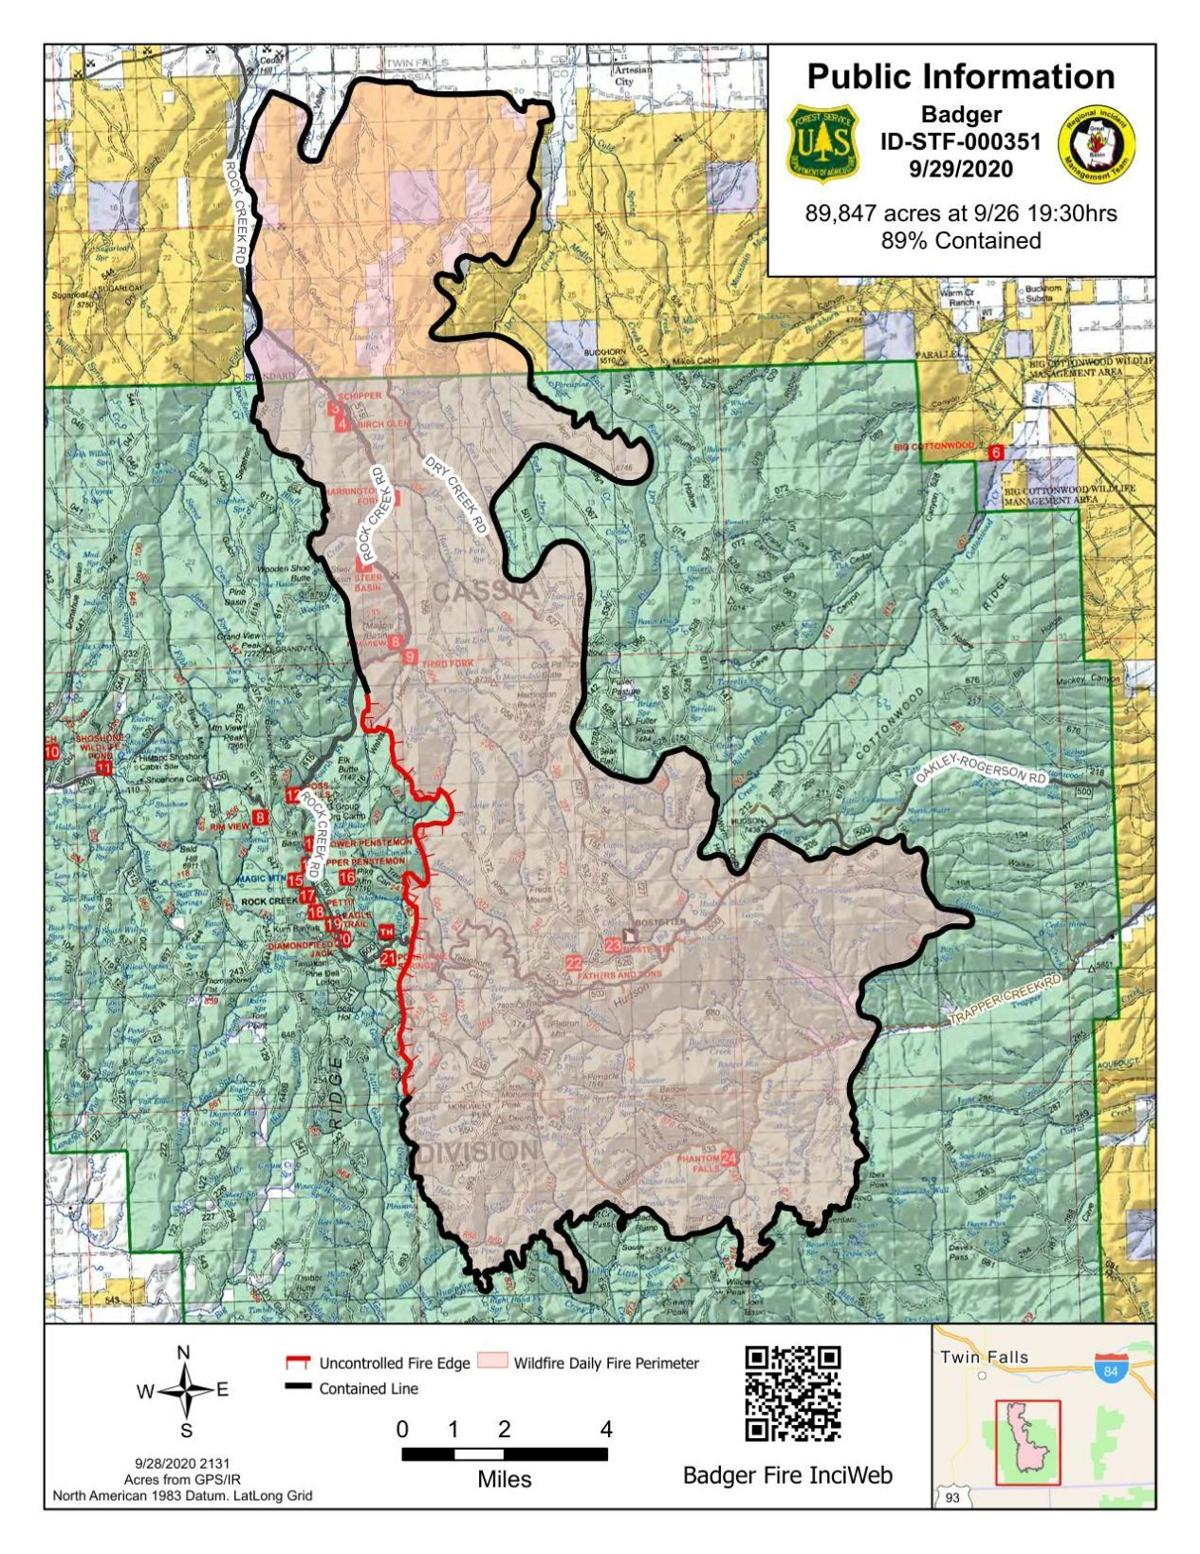 Badger Fire Tuesday map